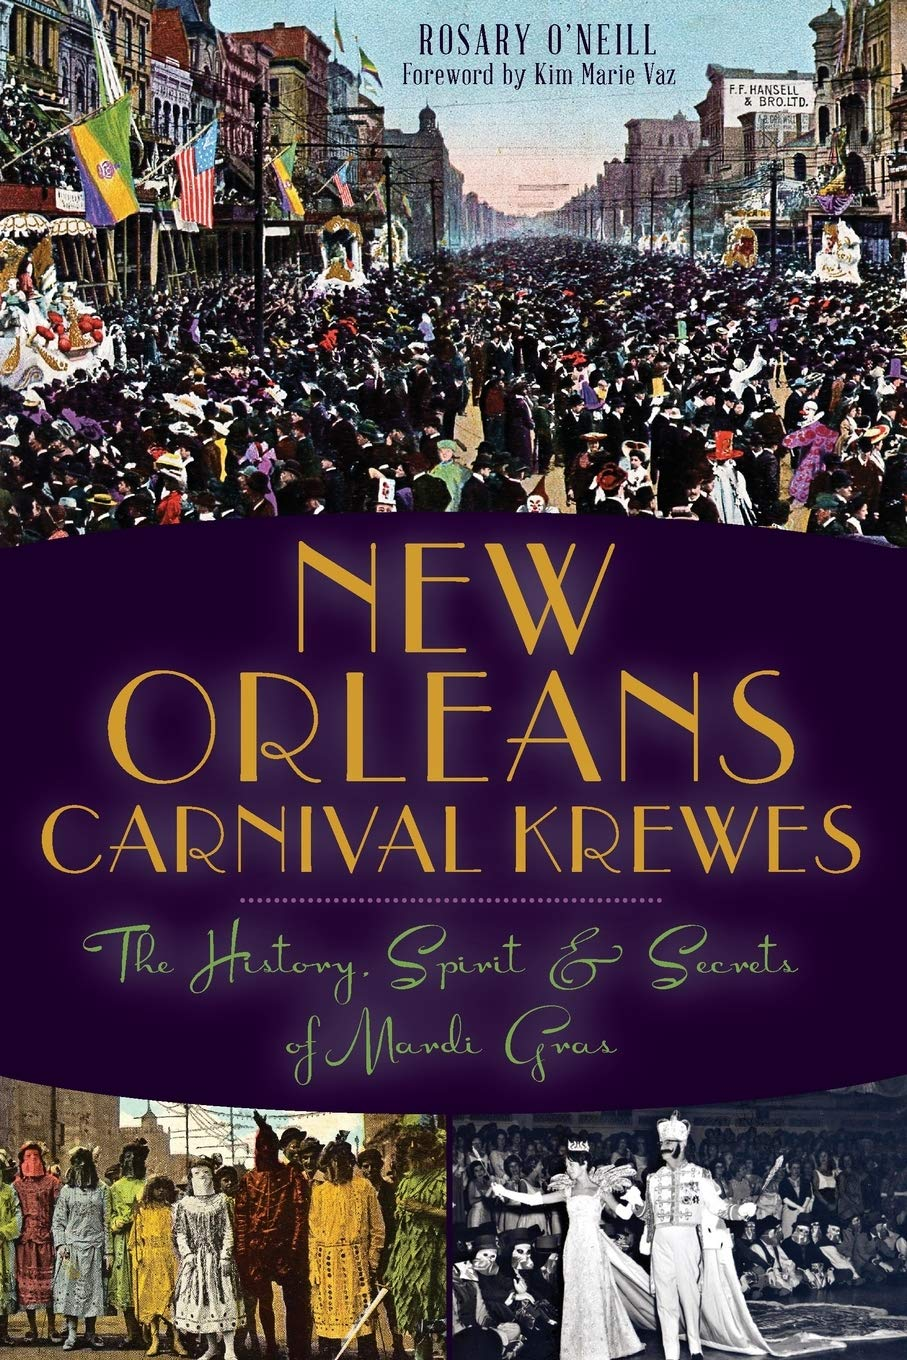 New Orleans Carnival Krewes: The History, Spirit & Secrets of Mardi Gras